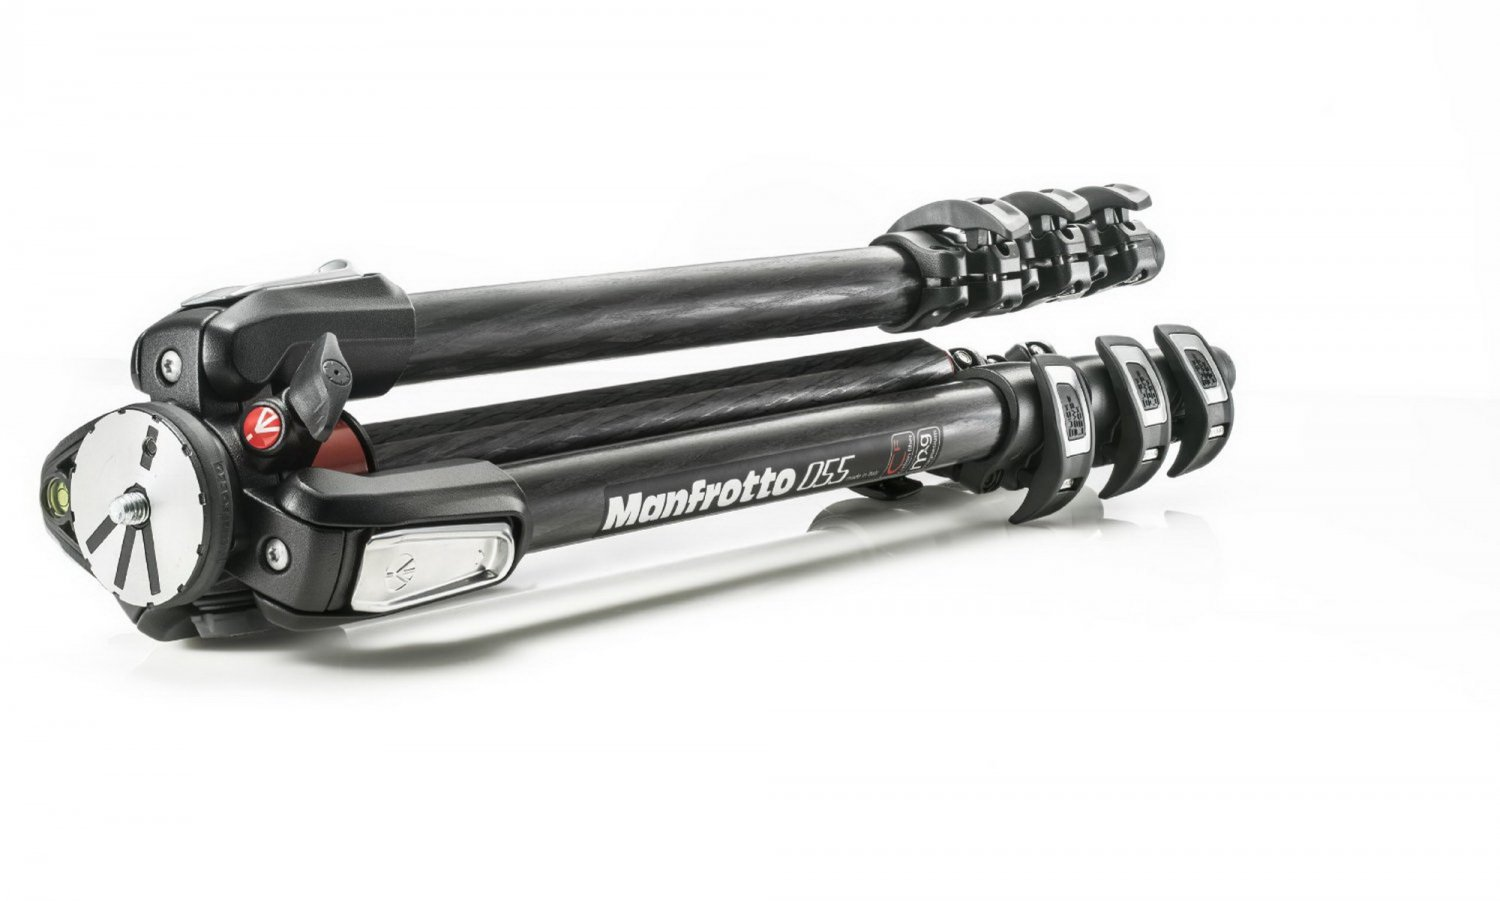 Manfrotto MT055CXPRO4 003